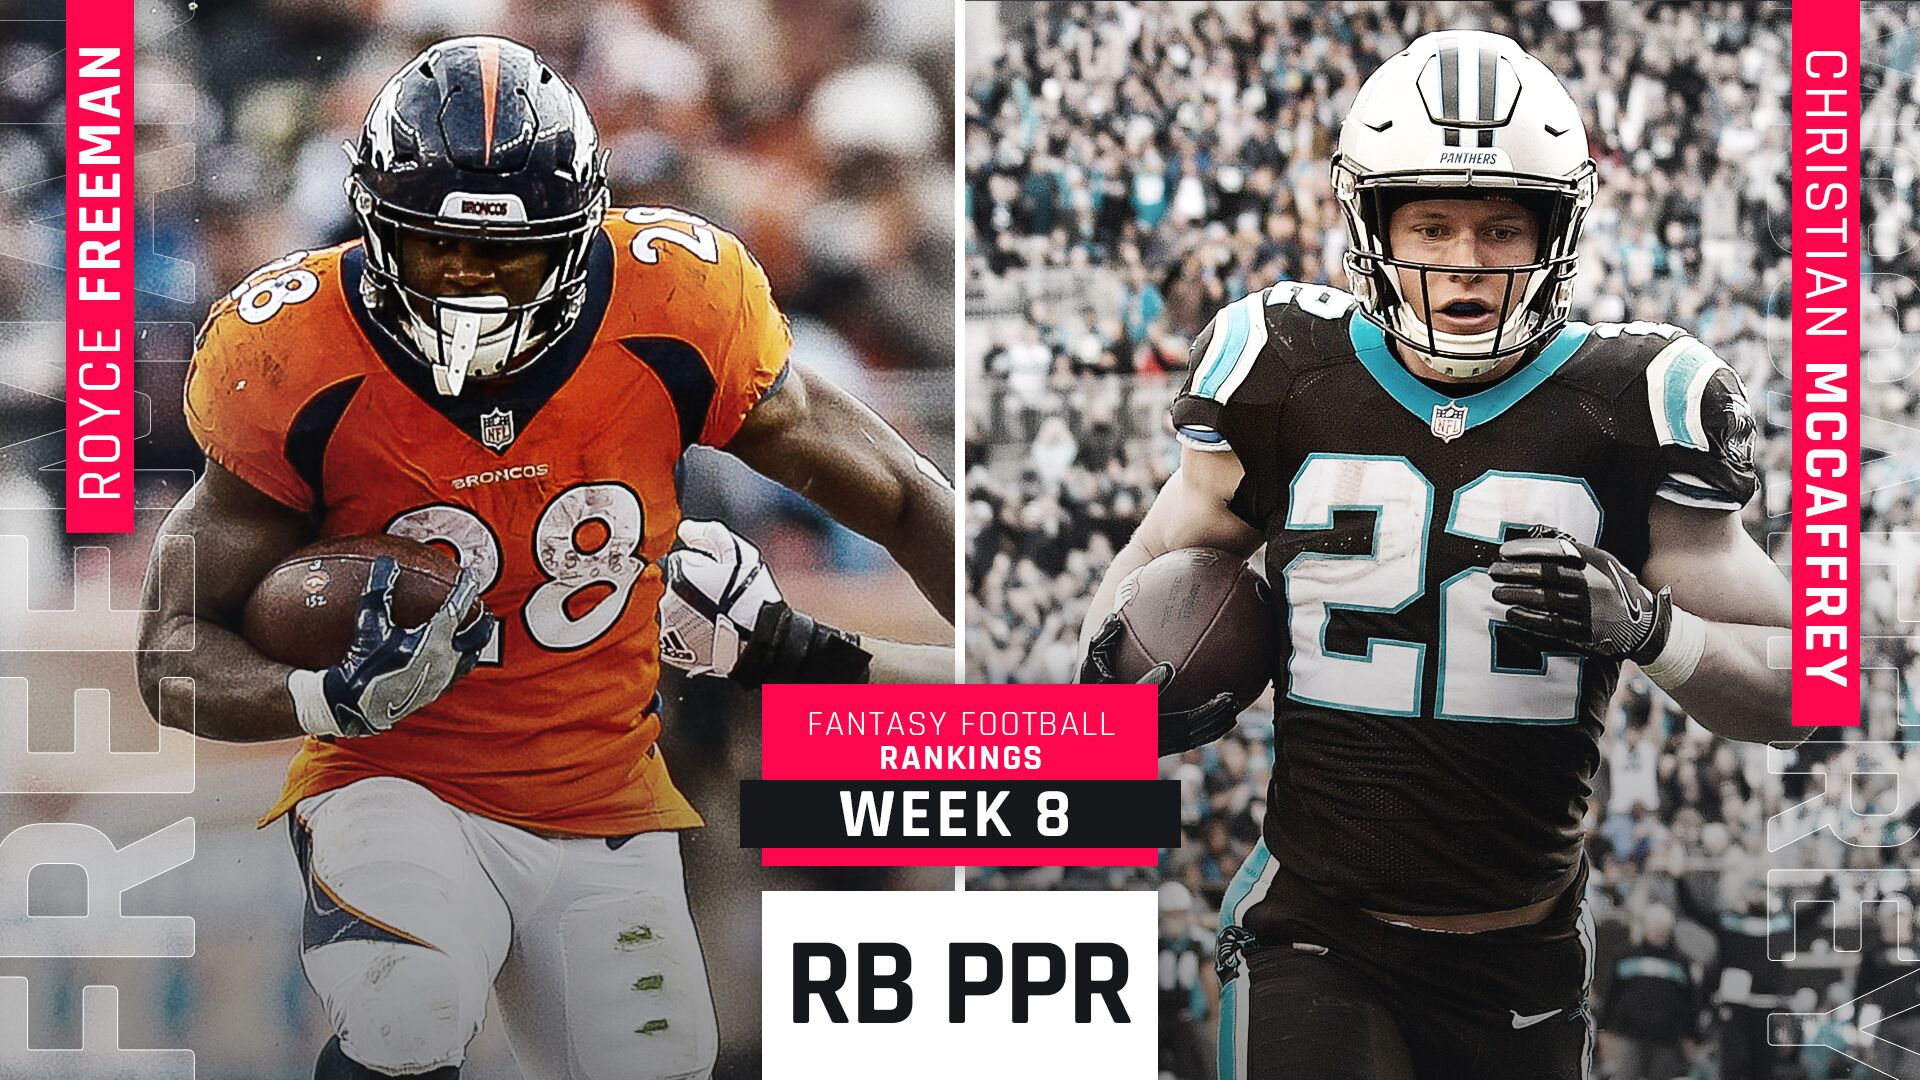 Week 8 Fantasy PPR RB Rankings